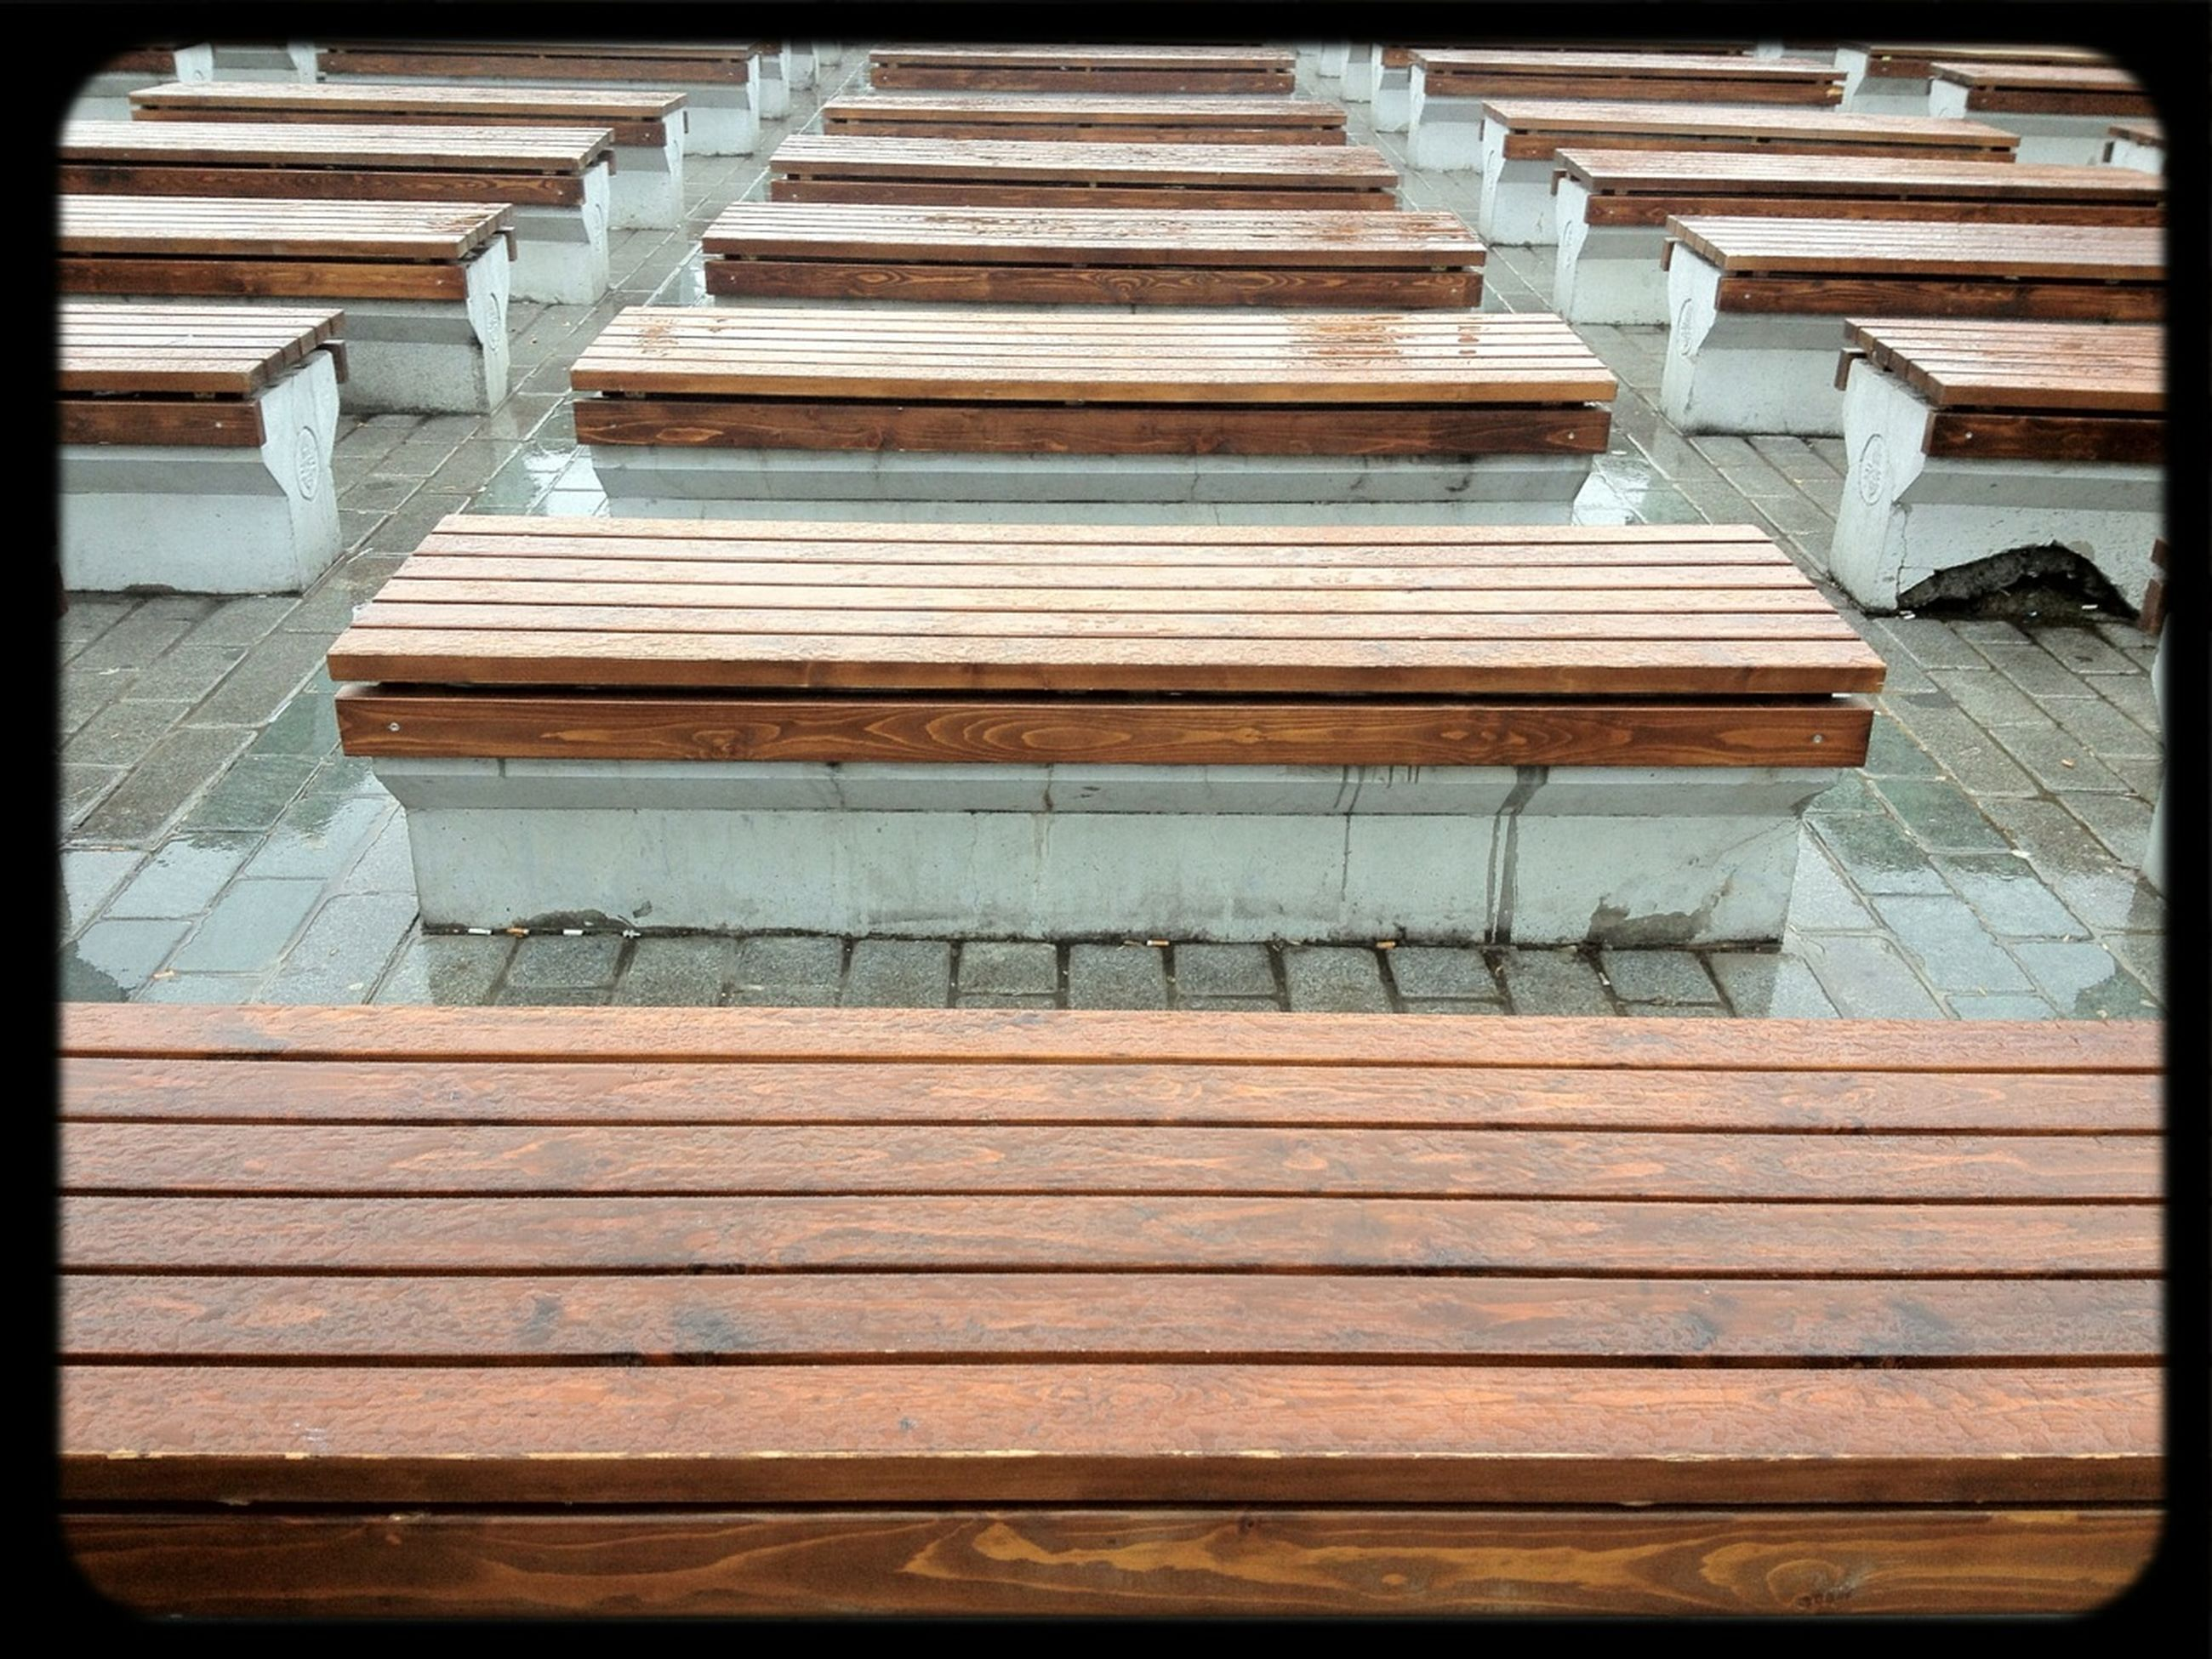 steps, wood - material, pattern, in a row, built structure, wooden, steps and staircases, repetition, architecture, building exterior, staircase, wood, auto post production filter, transfer print, no people, roof, day, sunlight, railing, close-up